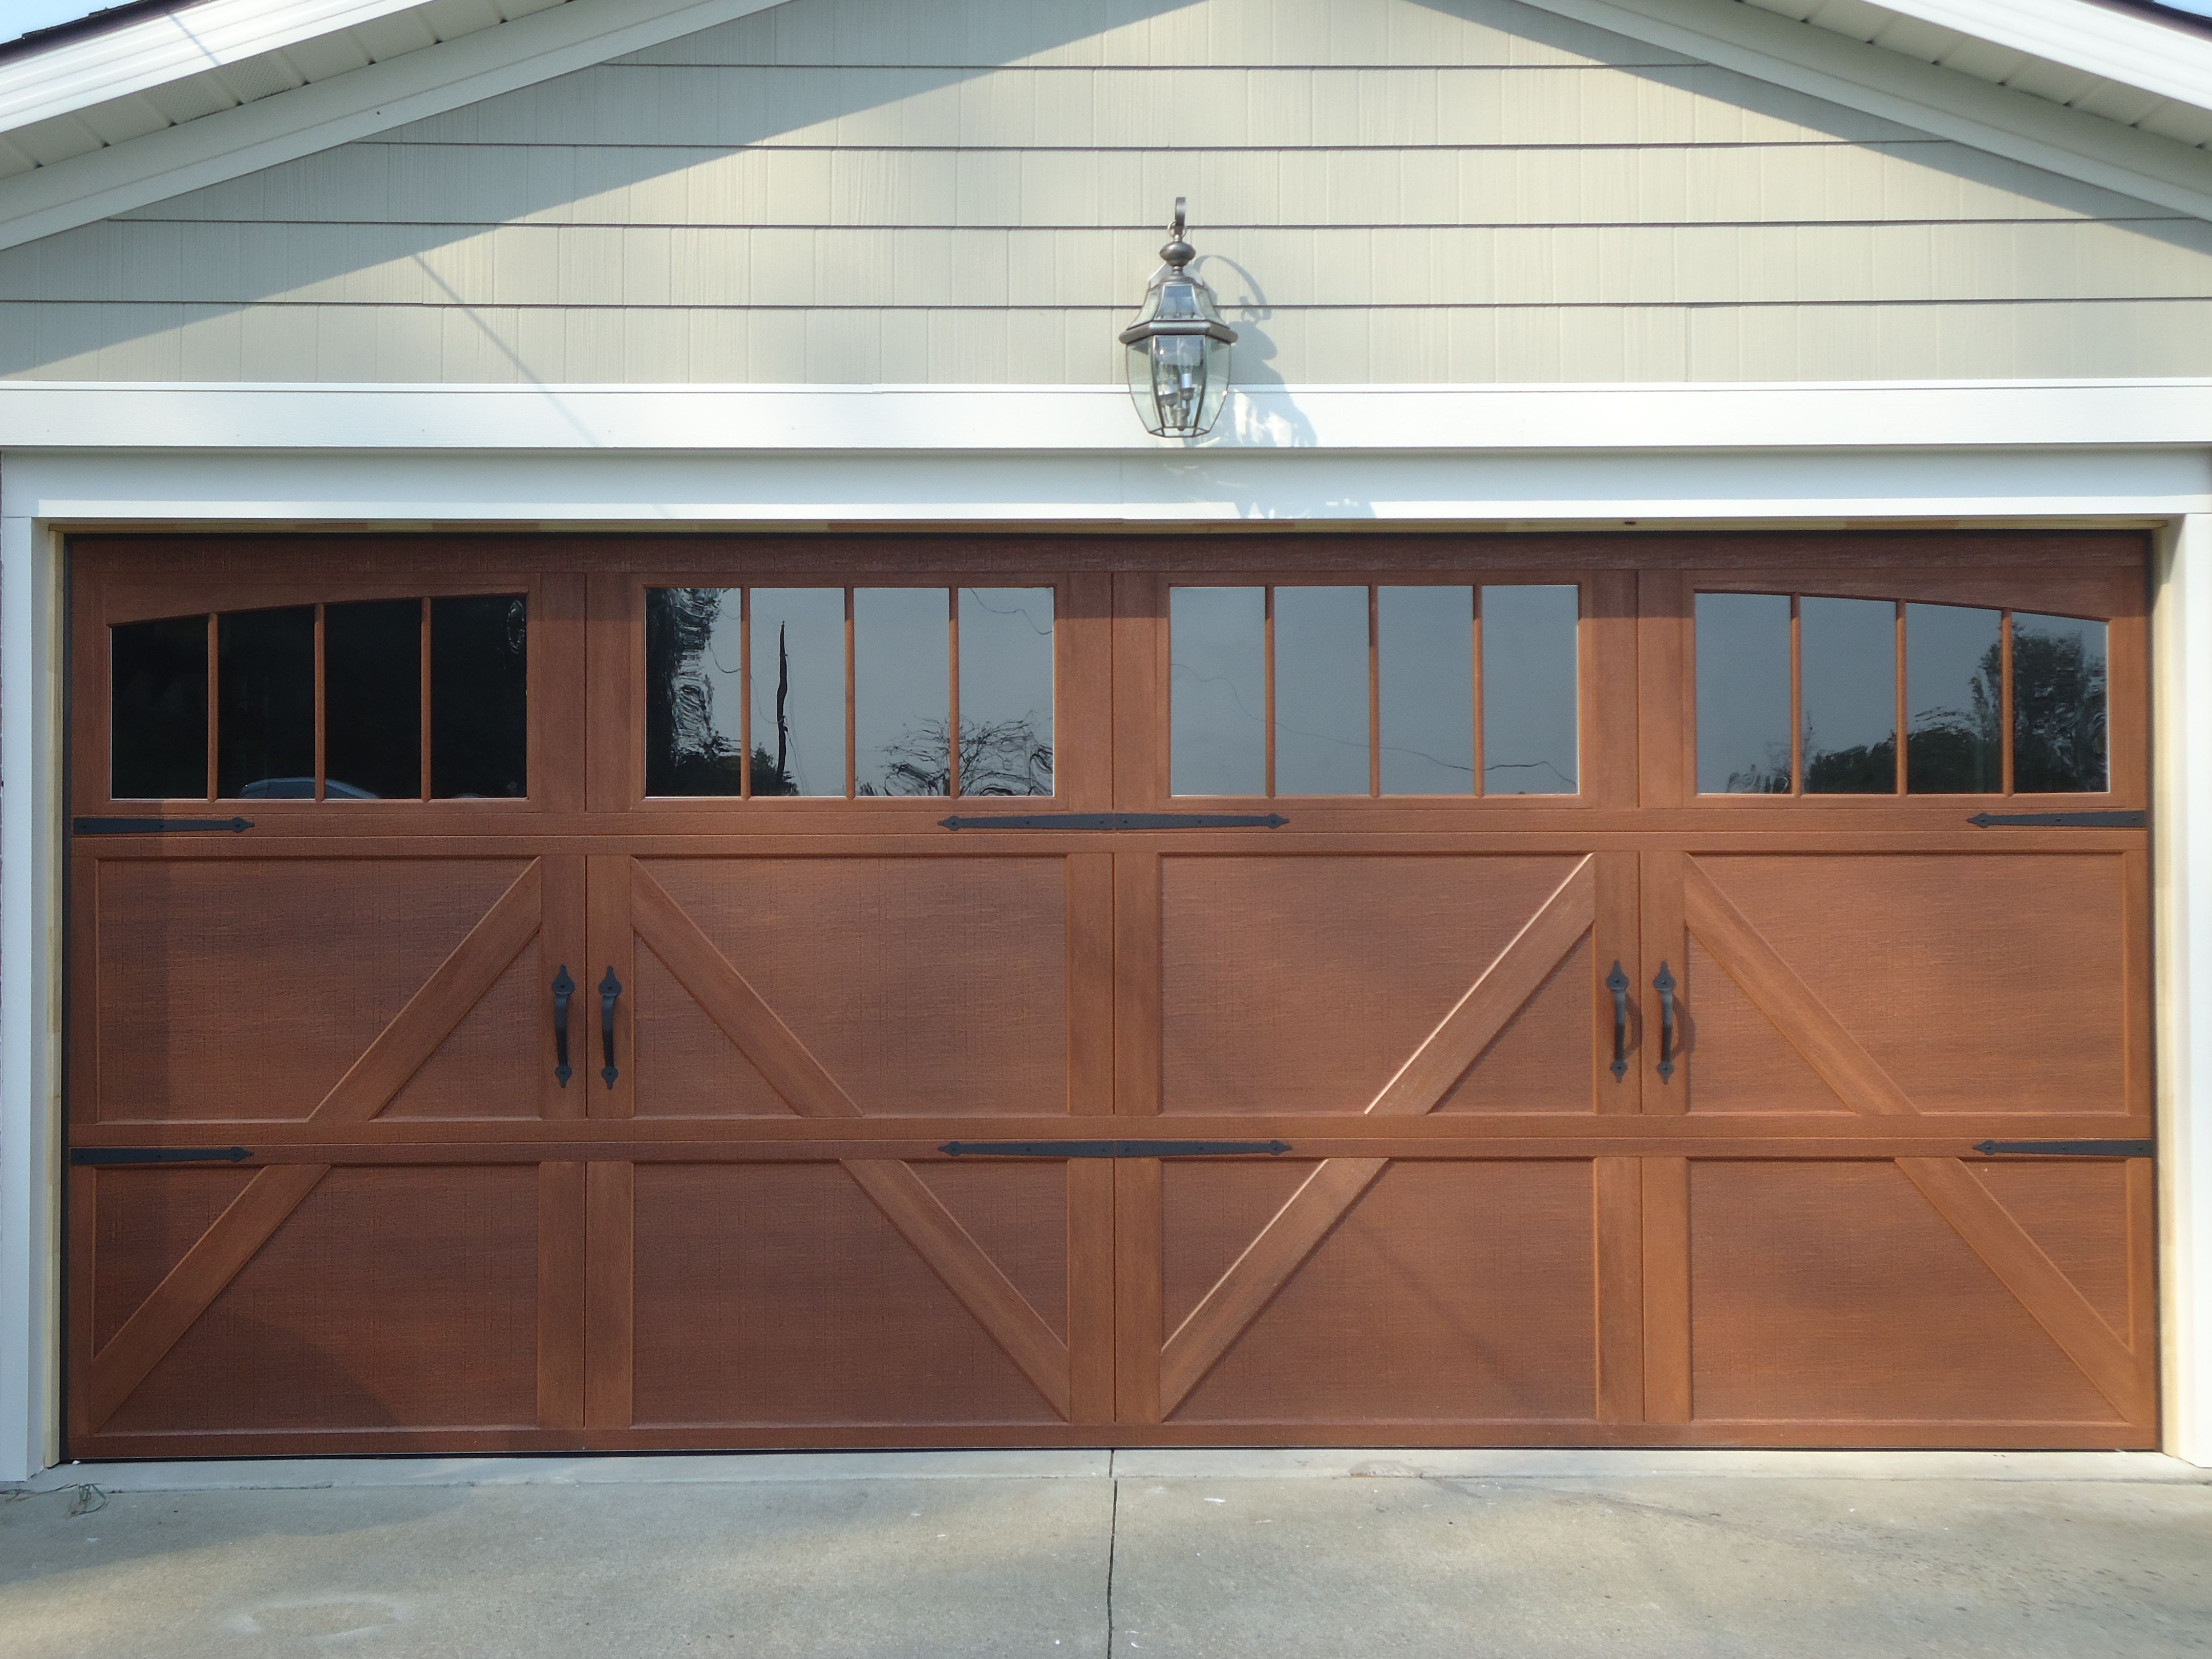 Garage Doors Prices Wayne Dalton Garage Door Cost About Lovely Small Home Decor